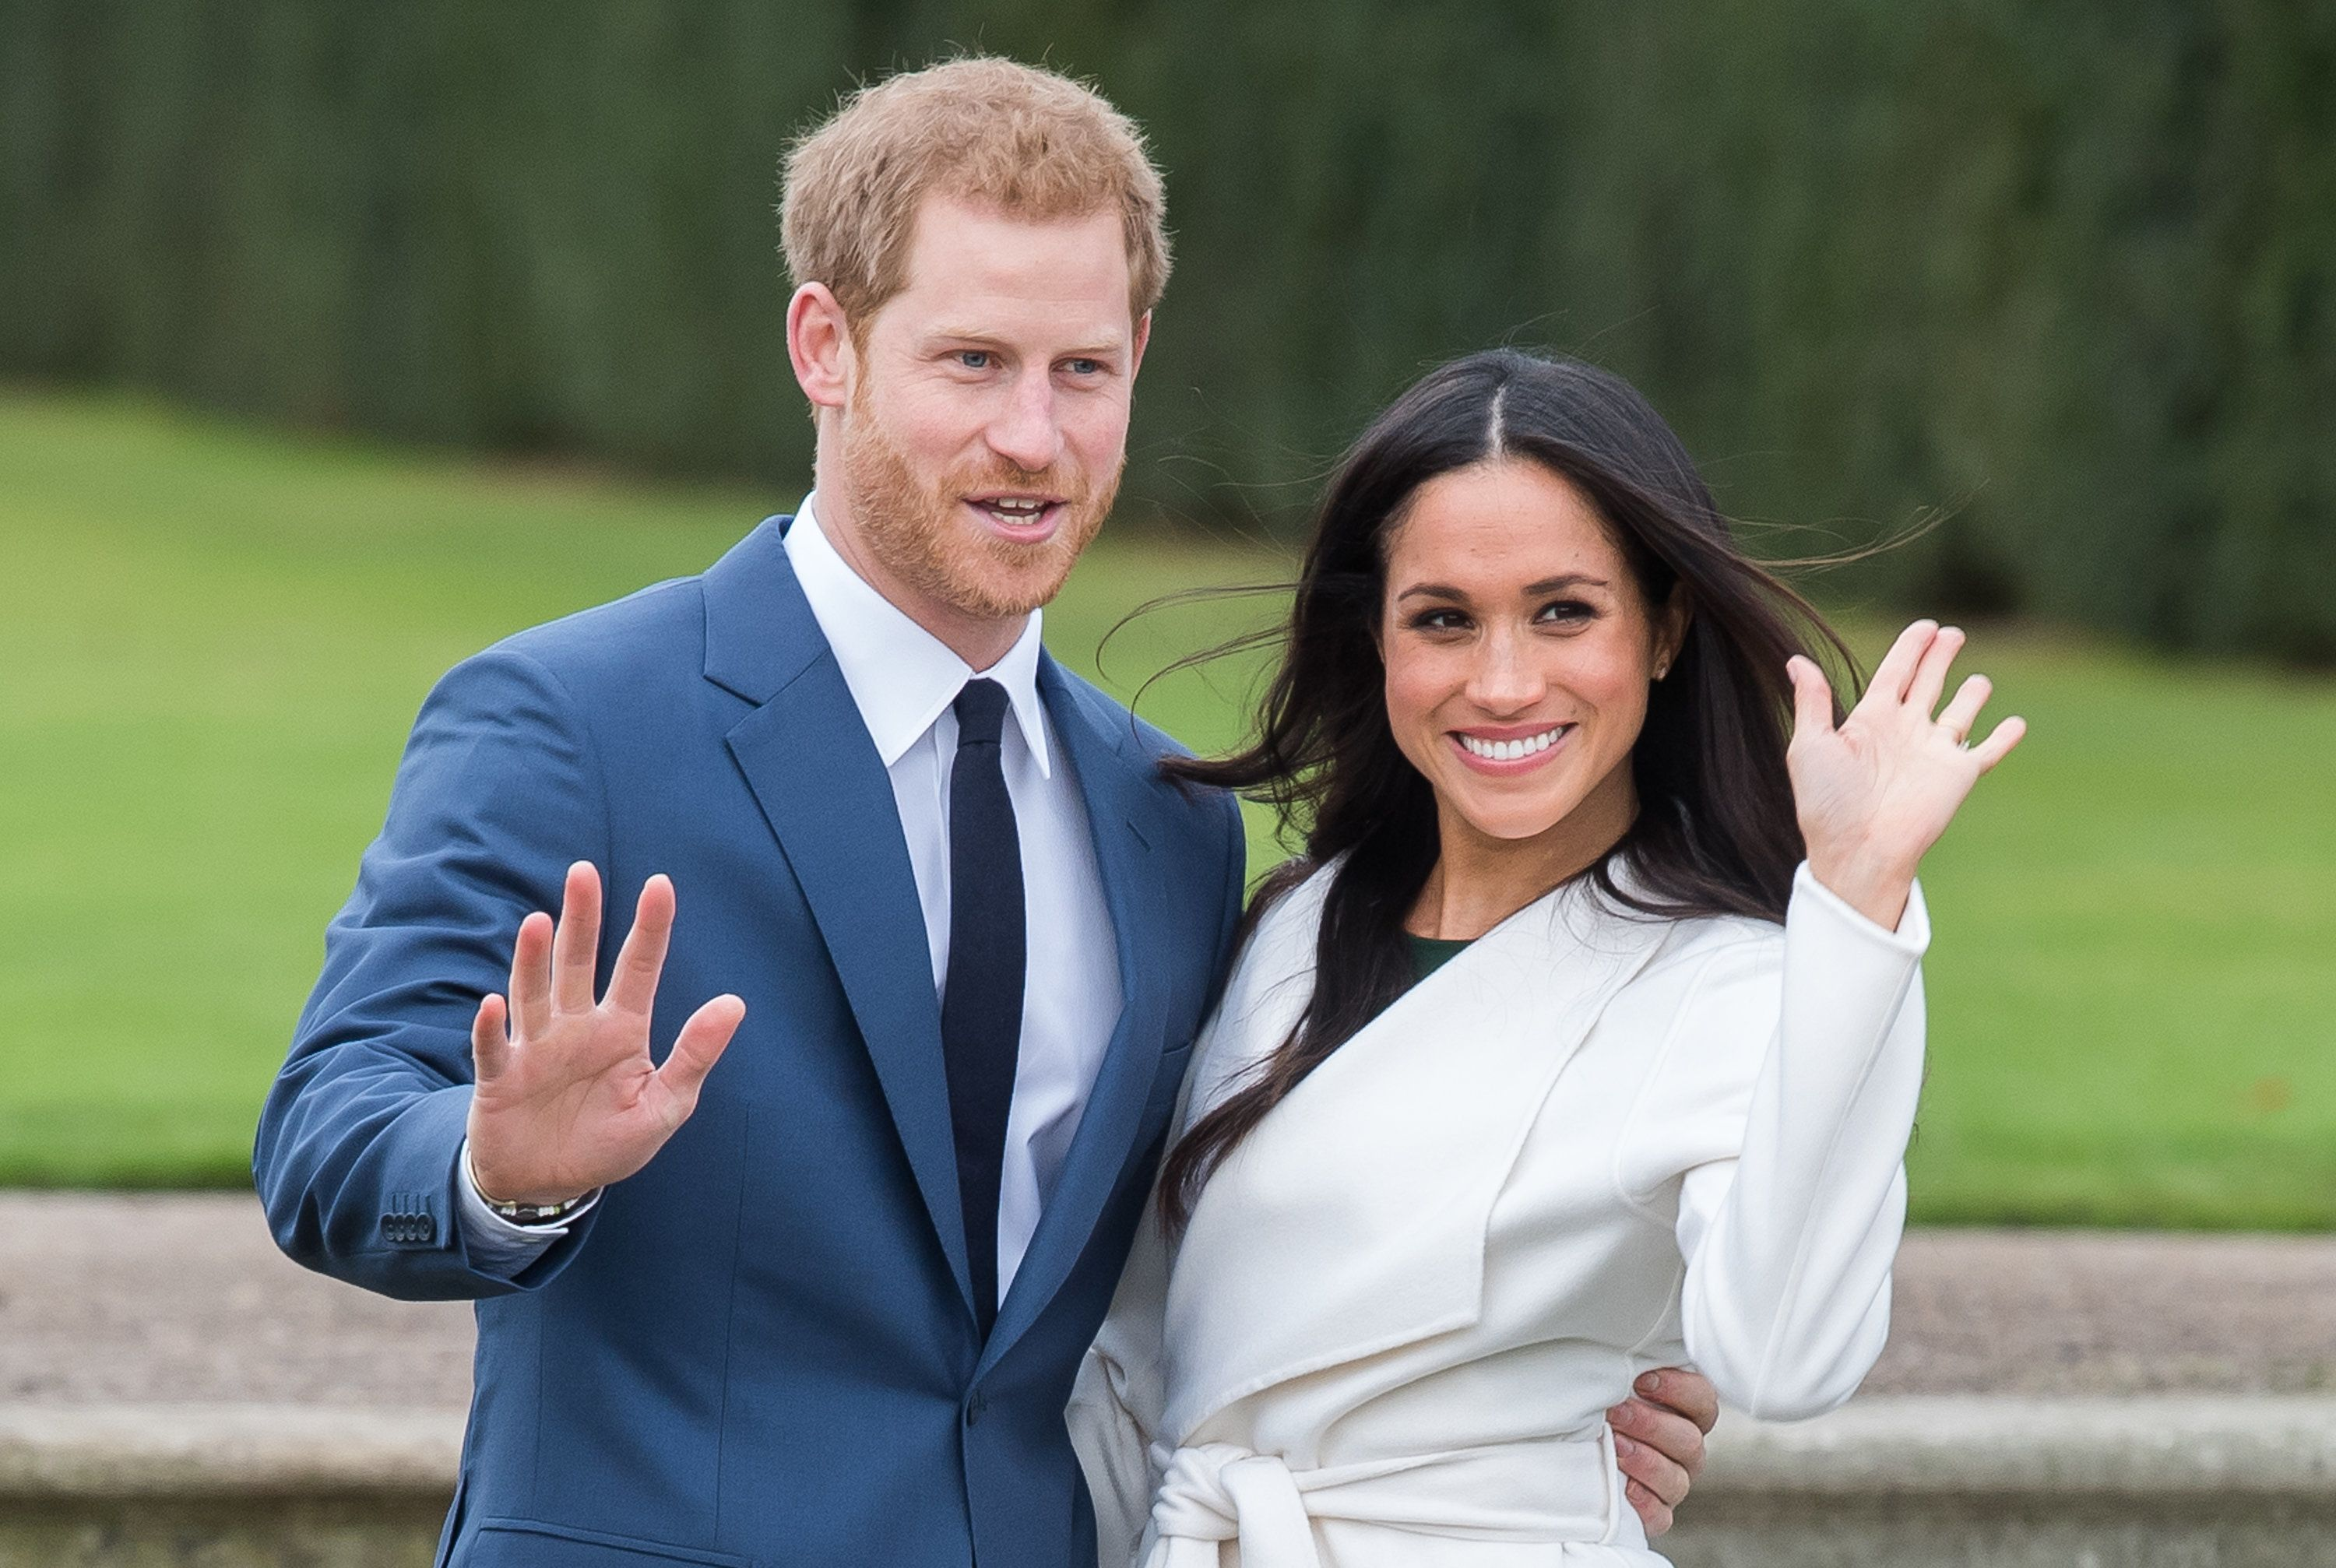 LONDON, ENGLAND - NOVEMBER 27:  Prince Harry and Meghan Markle during an official photocall to announce the engagement of Prince Harry and actress Meghan Markle at The Sunken Gardens at Kensington Palace on November 27, 2017 in London, England.  Prince Harry and Meghan Markle have been a couple officially since November 2016 and are due to marry in Spring 2018.  (Photo by Samir Hussein/Samir Hussein/WireImage)